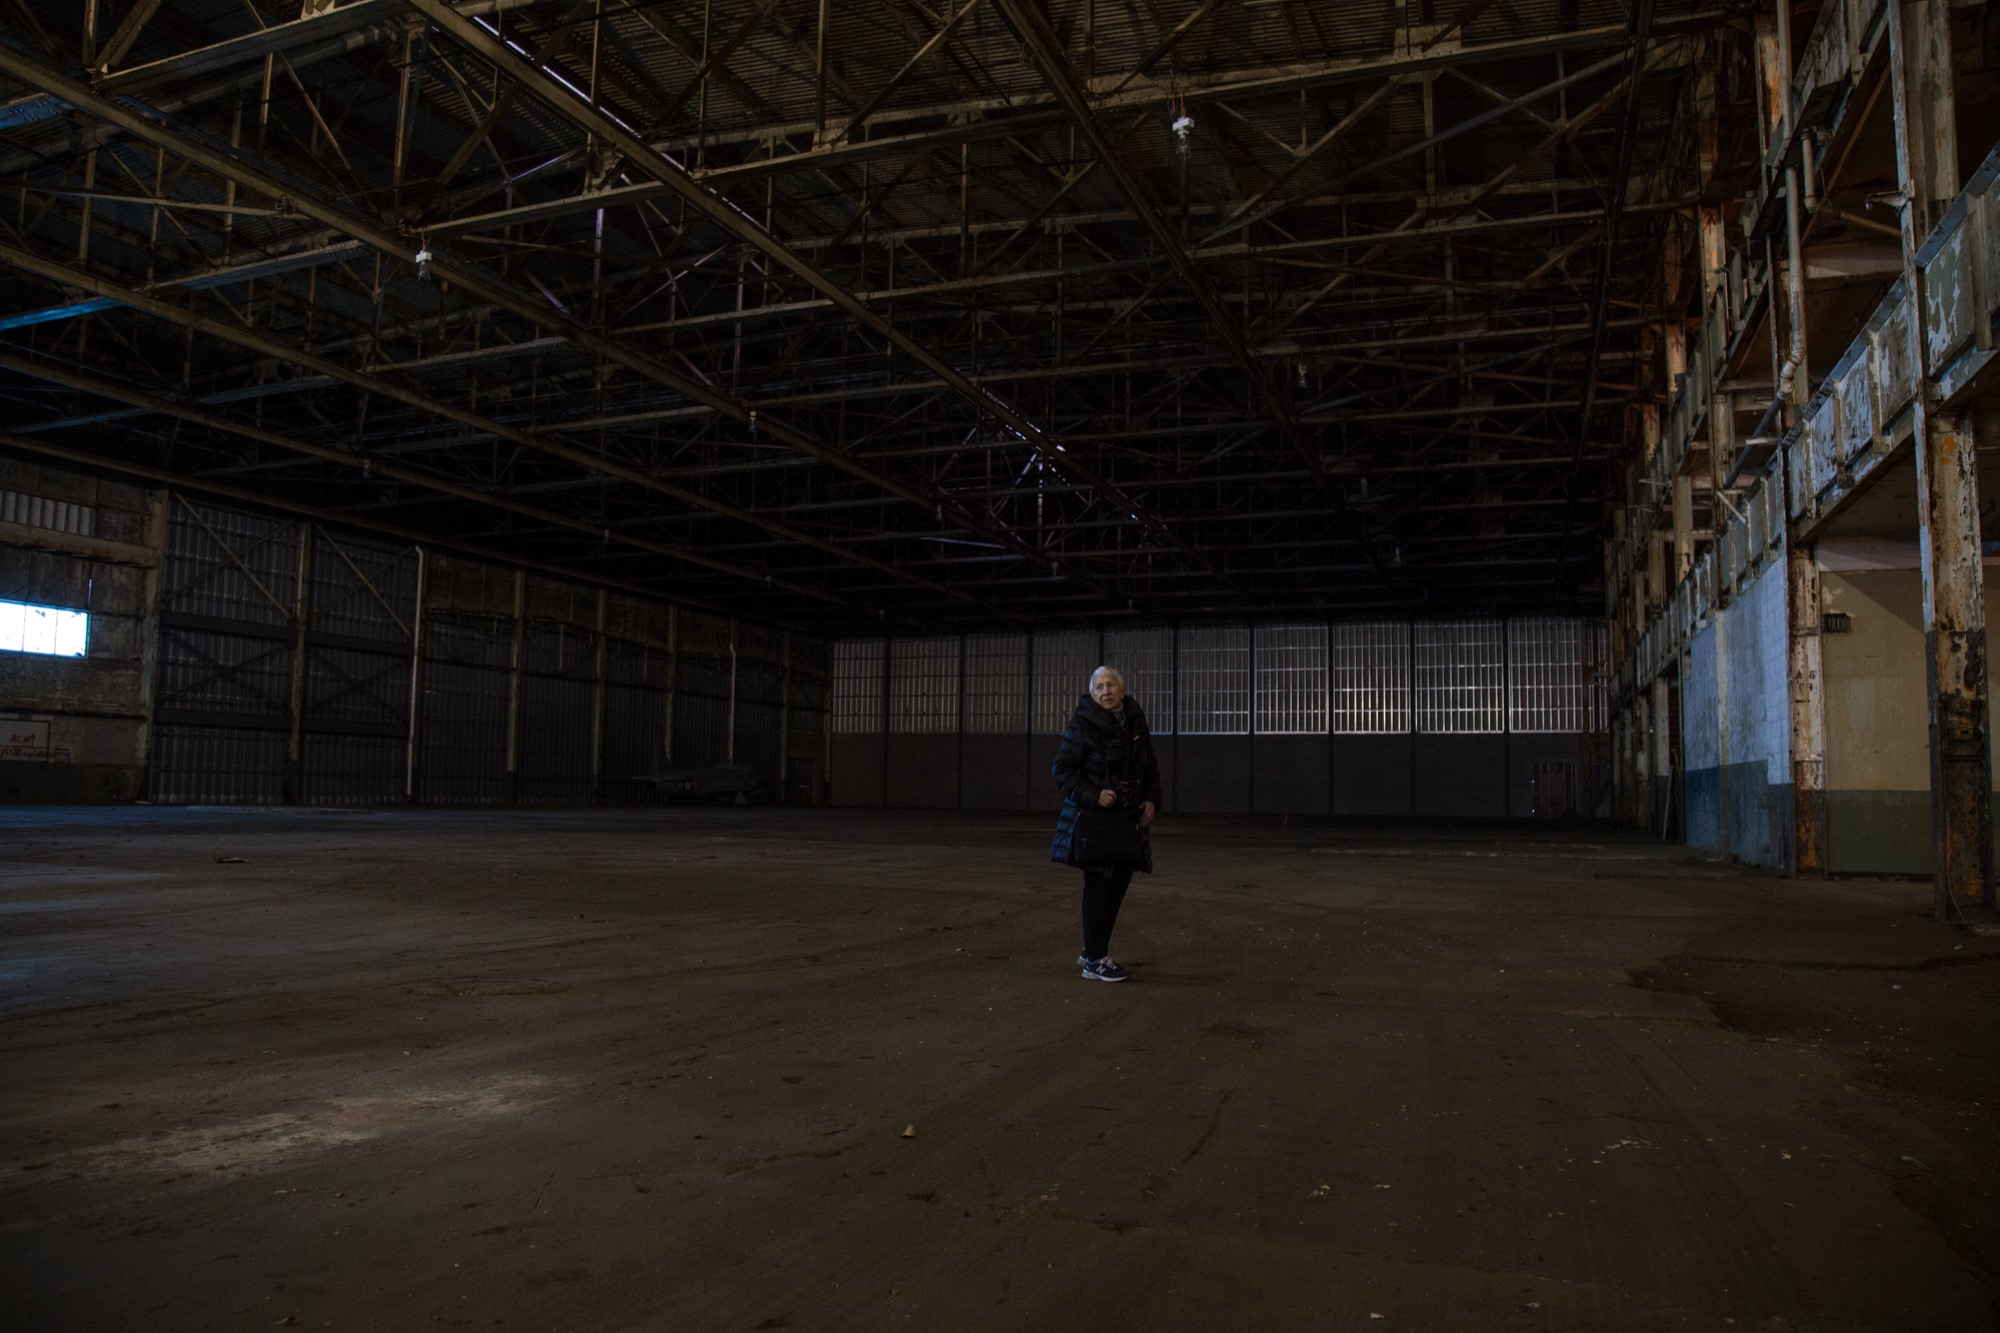 Willow Run's interior is so large that Ruben almost blends into its immensity.